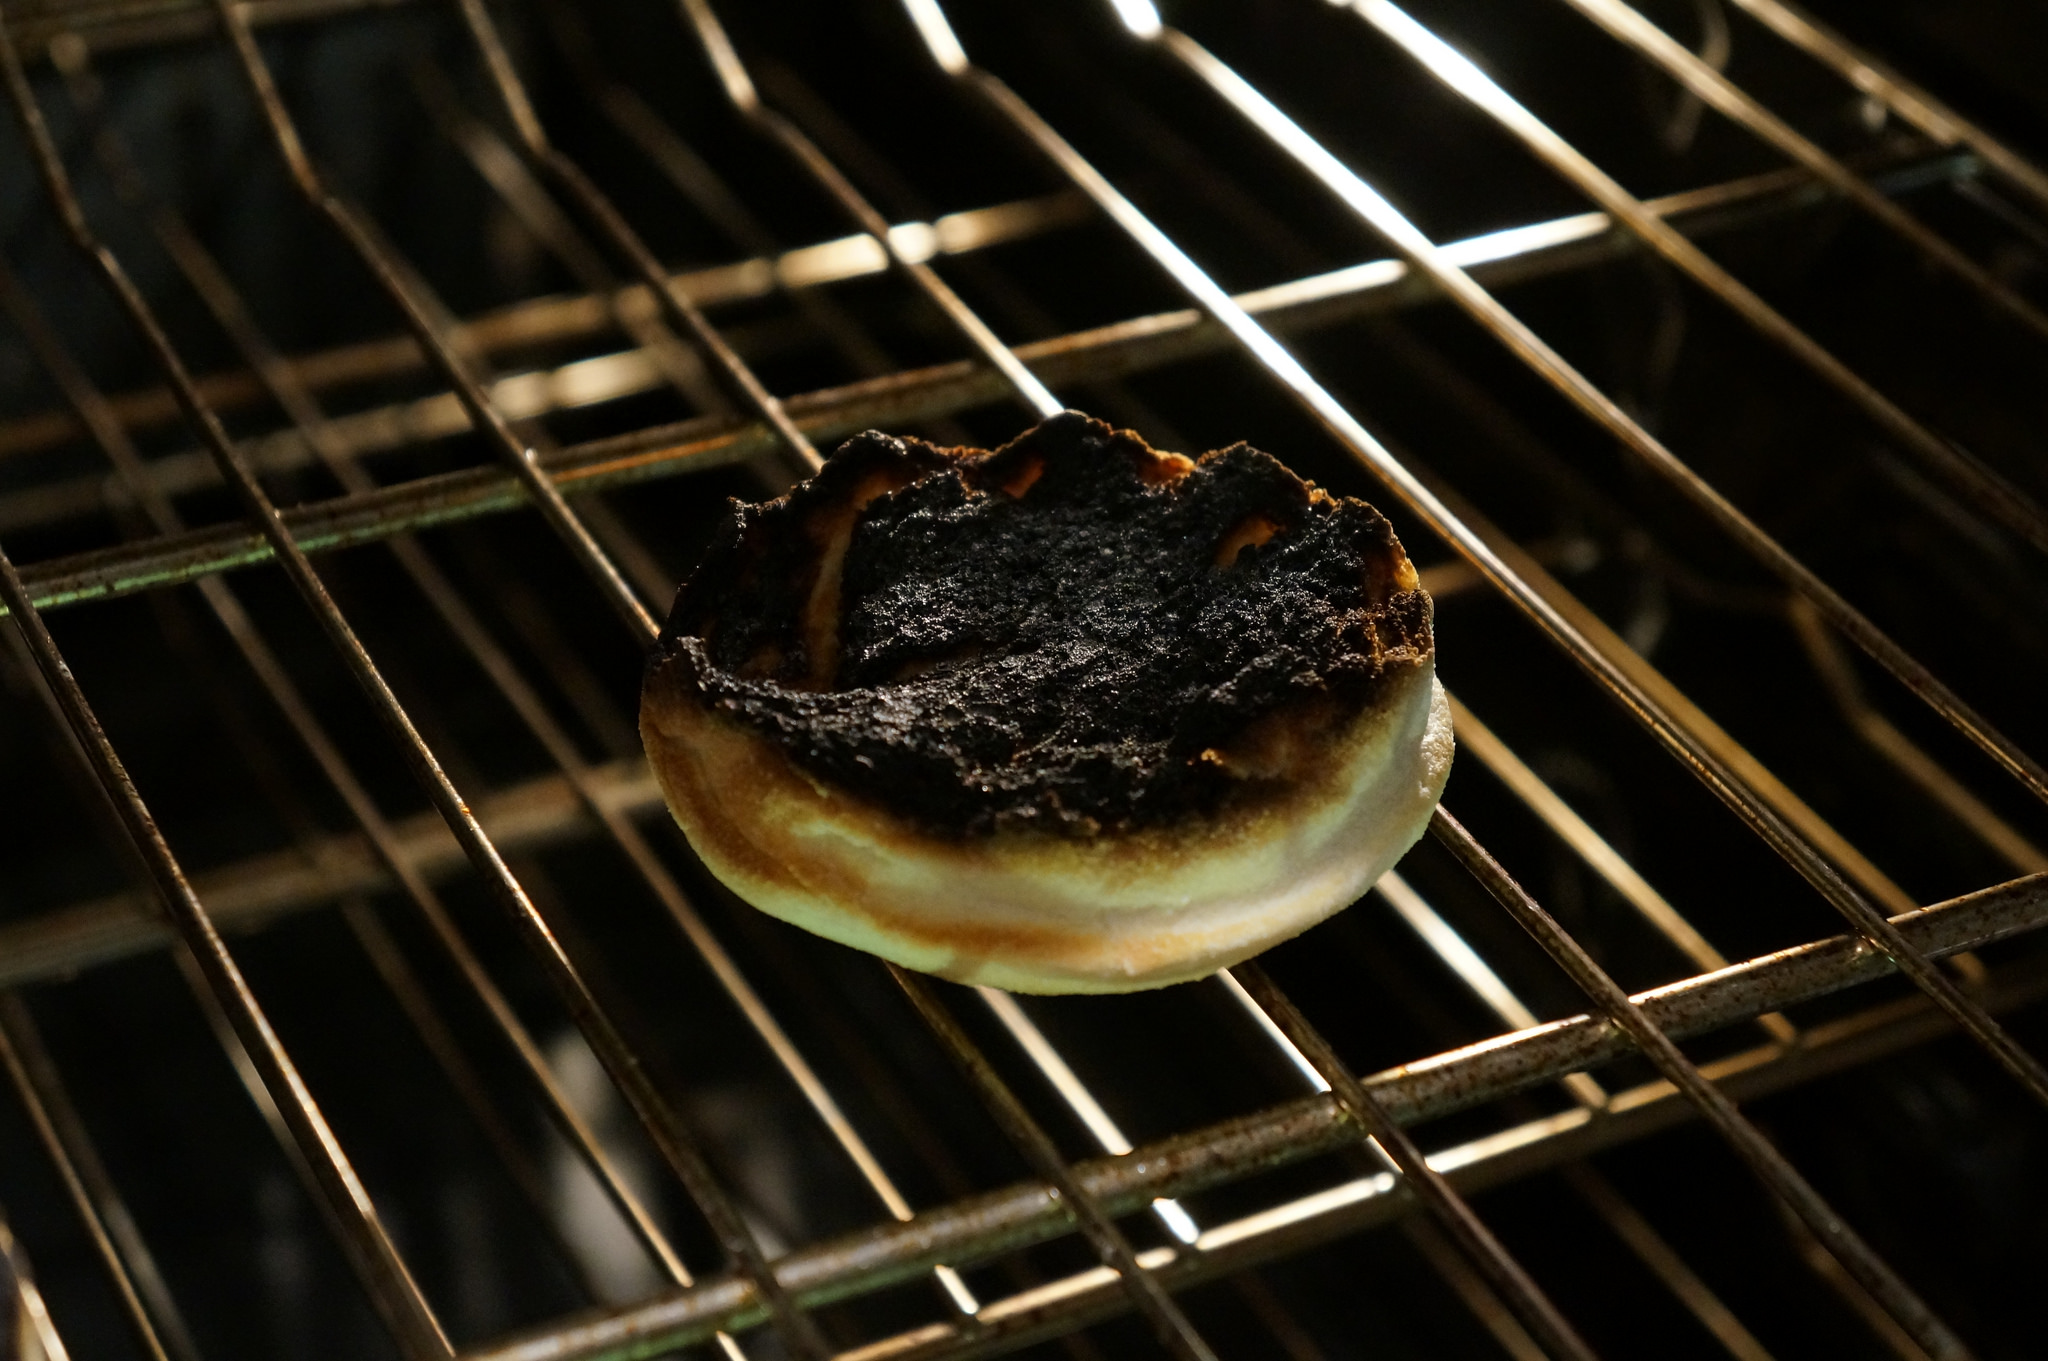 """""""Burnt english muffin"""" by RosieTulips 2014 CC BY-NC-ND 2.0"""